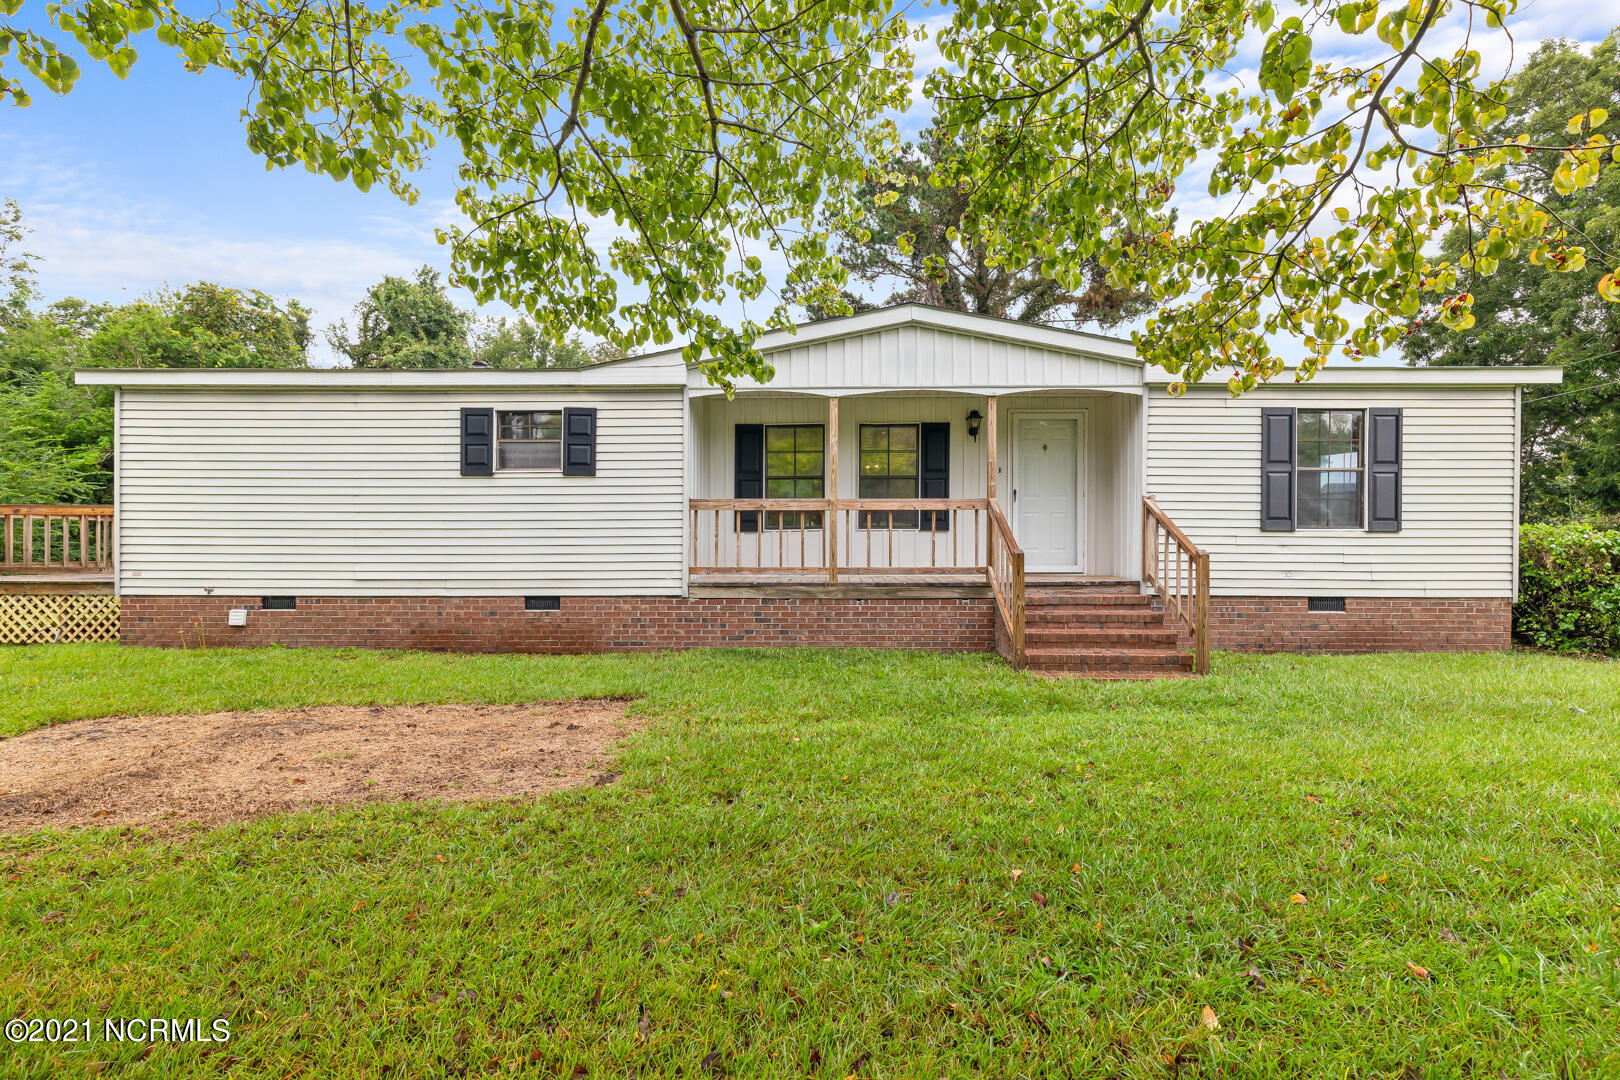 Come see this well cared for home that sits on over half an acre! With 3 bedrooms, 2 full bathrooms and a large living space everyone will have room to stretch out!. A few of the favorite features are the split floor plan, large master bedroom and the deck perfect for grilling on. Be sure to schedule your appointment today!